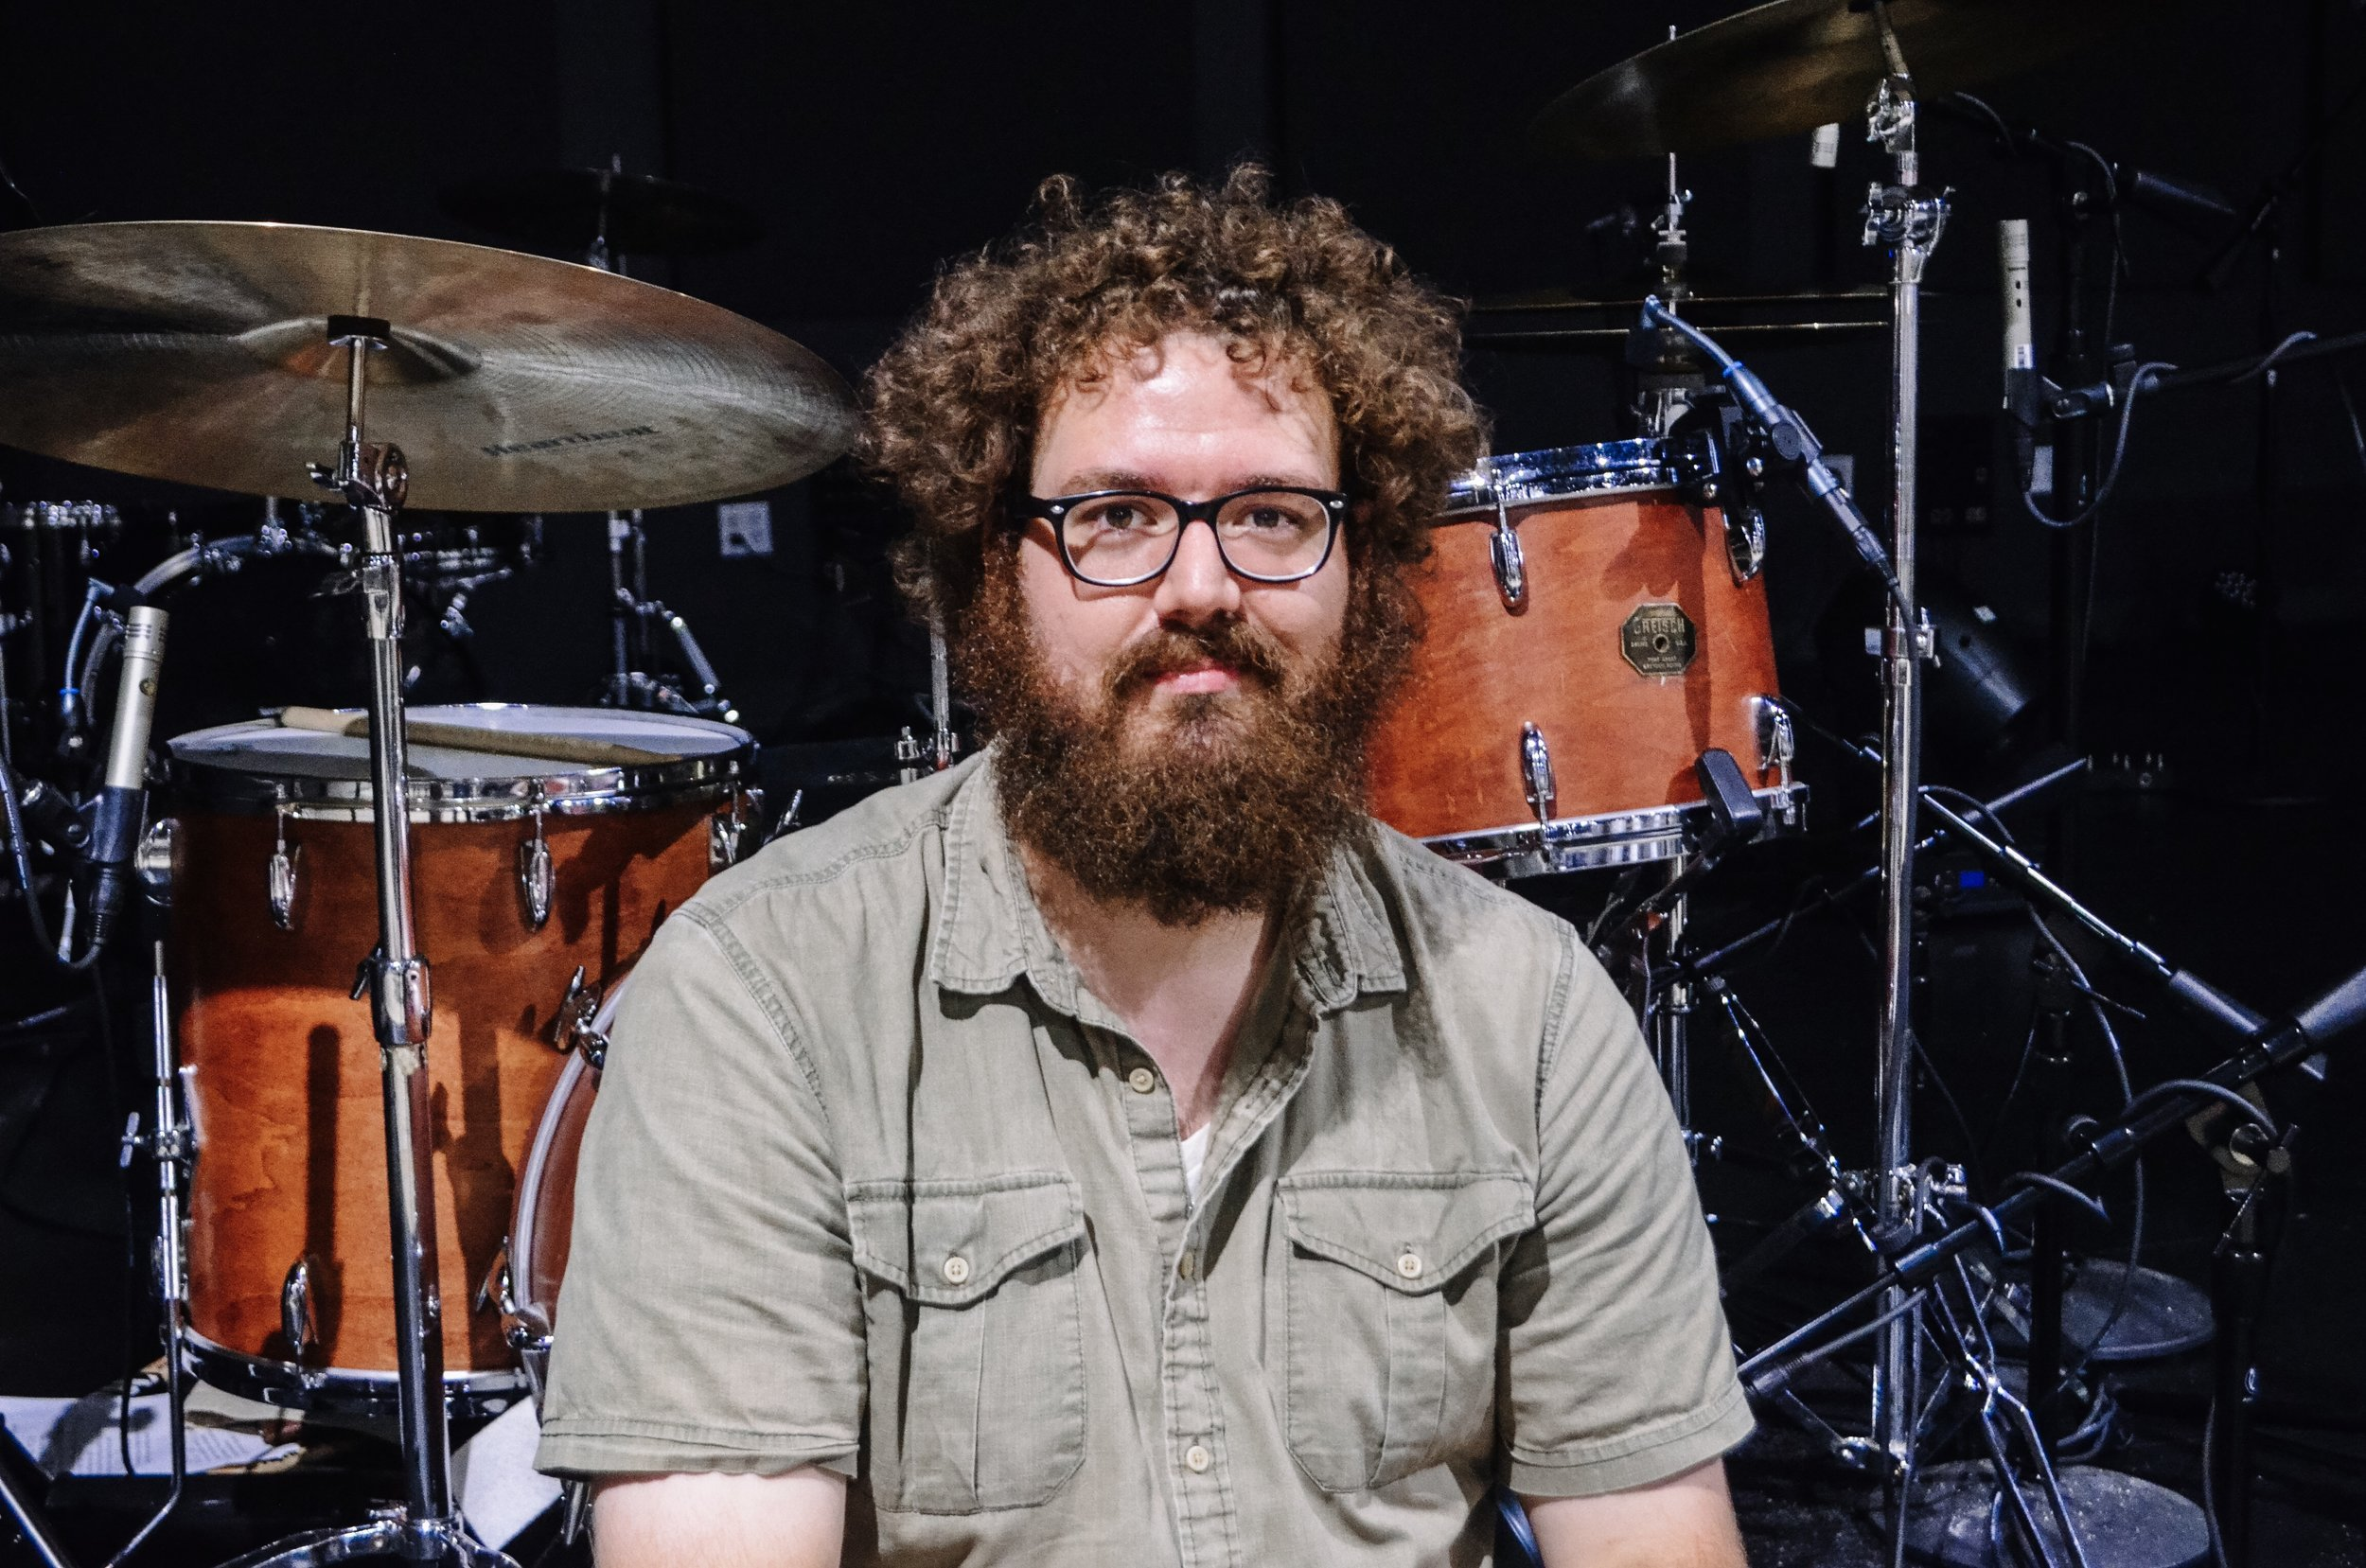 This is Luke Cross. - He plays drums on every song of the album except